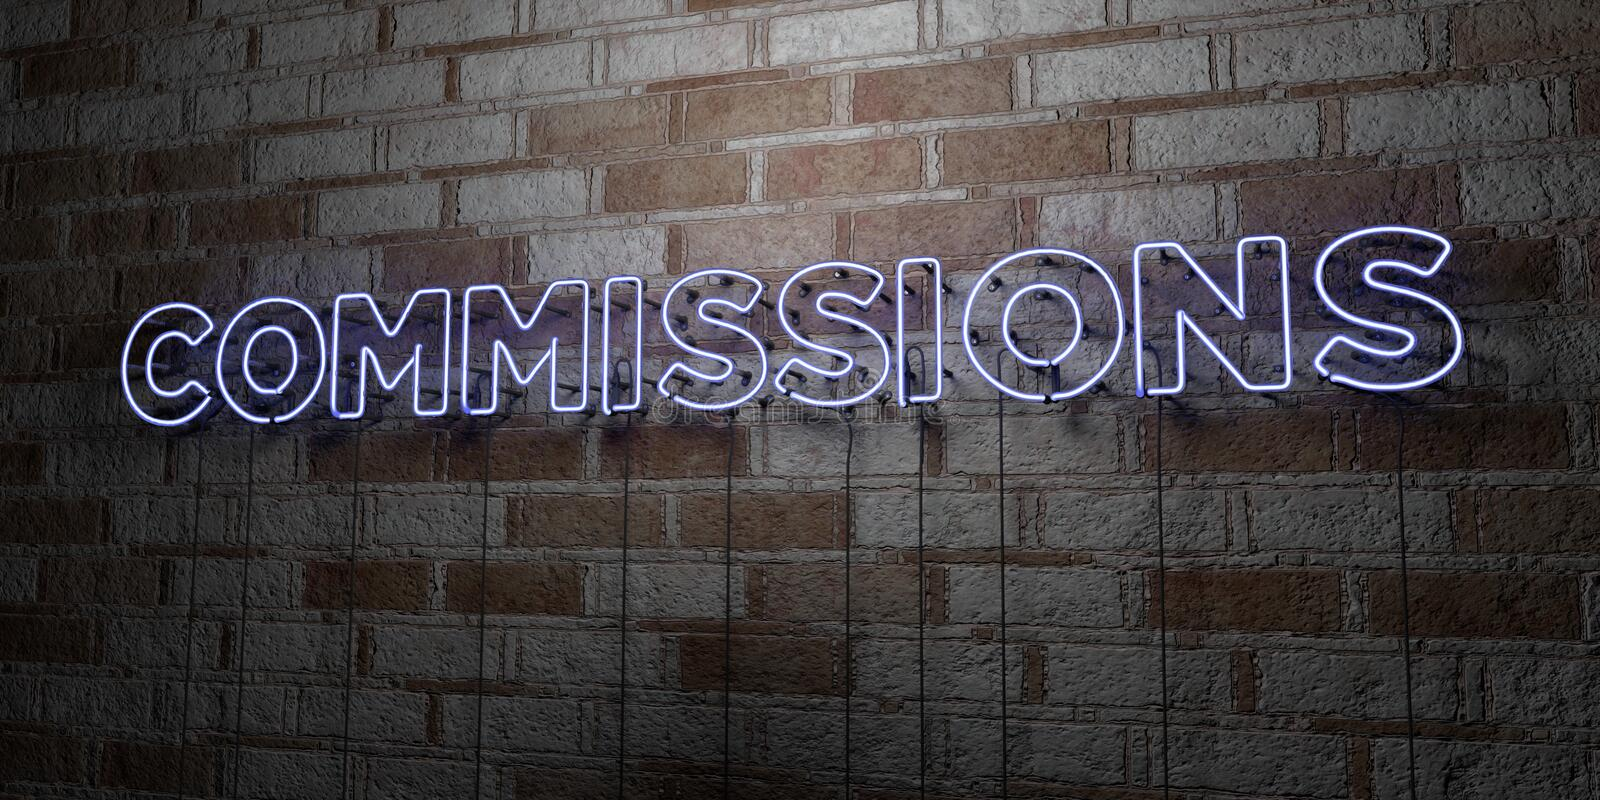 COMMISSIONS - Glowing Neon Sign on stonework wall - 3D rendered royalty free stock illustration. Can be used for online banner ads and direct mailers royalty free illustration